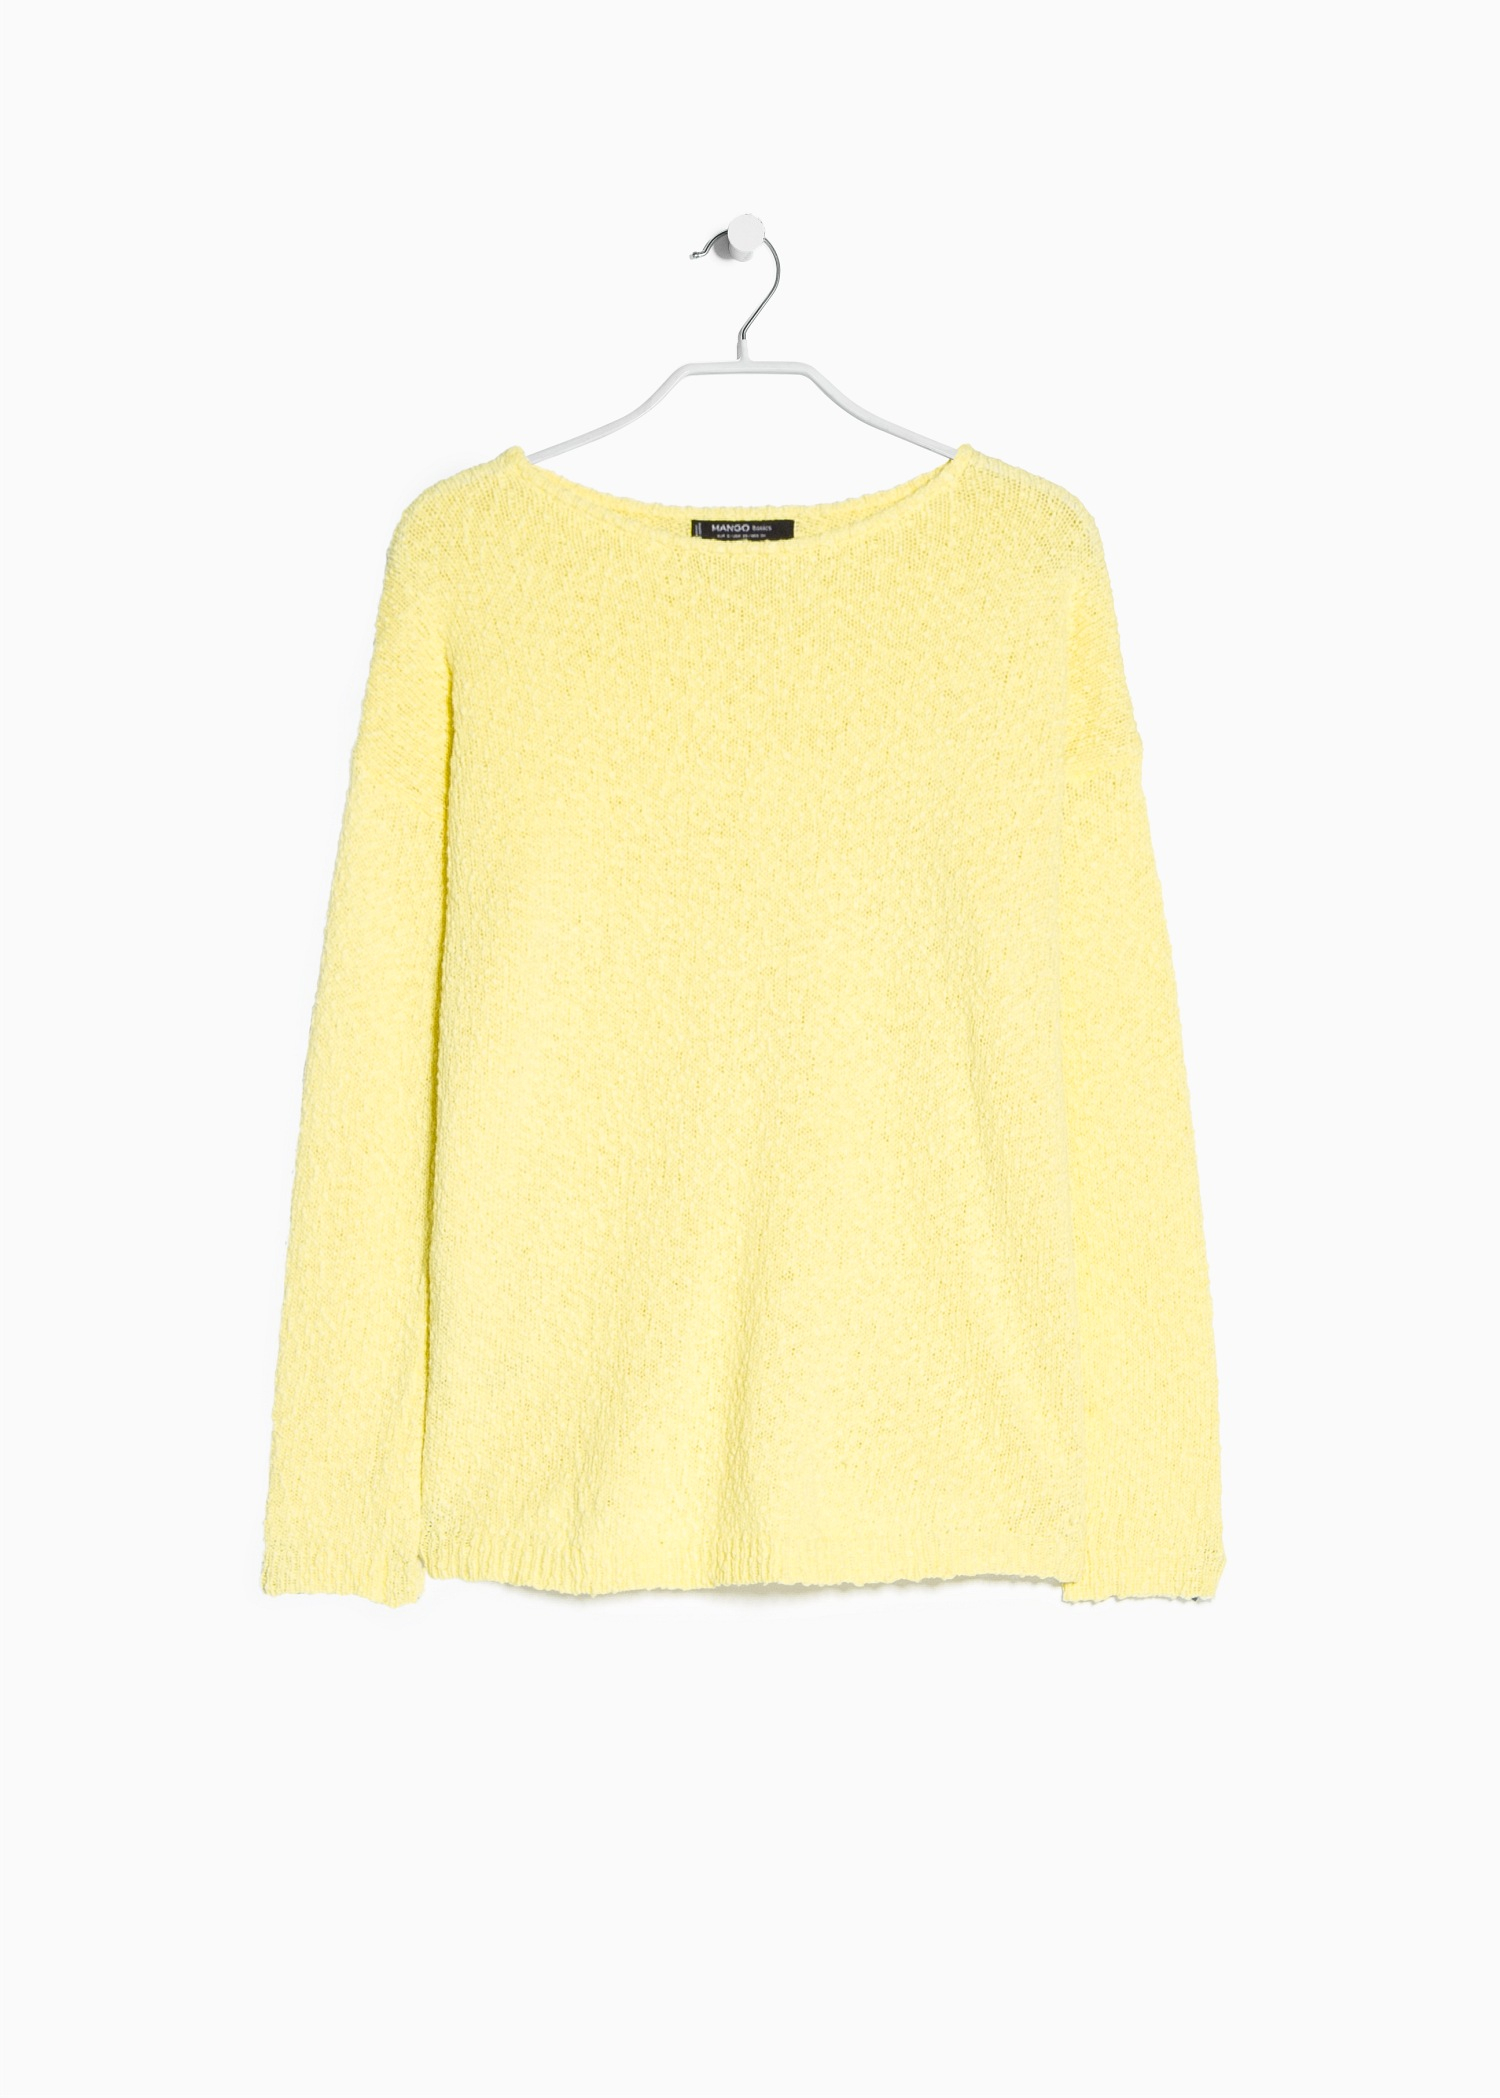 Mango Textured Cotton Sweater in Yellow | Lyst